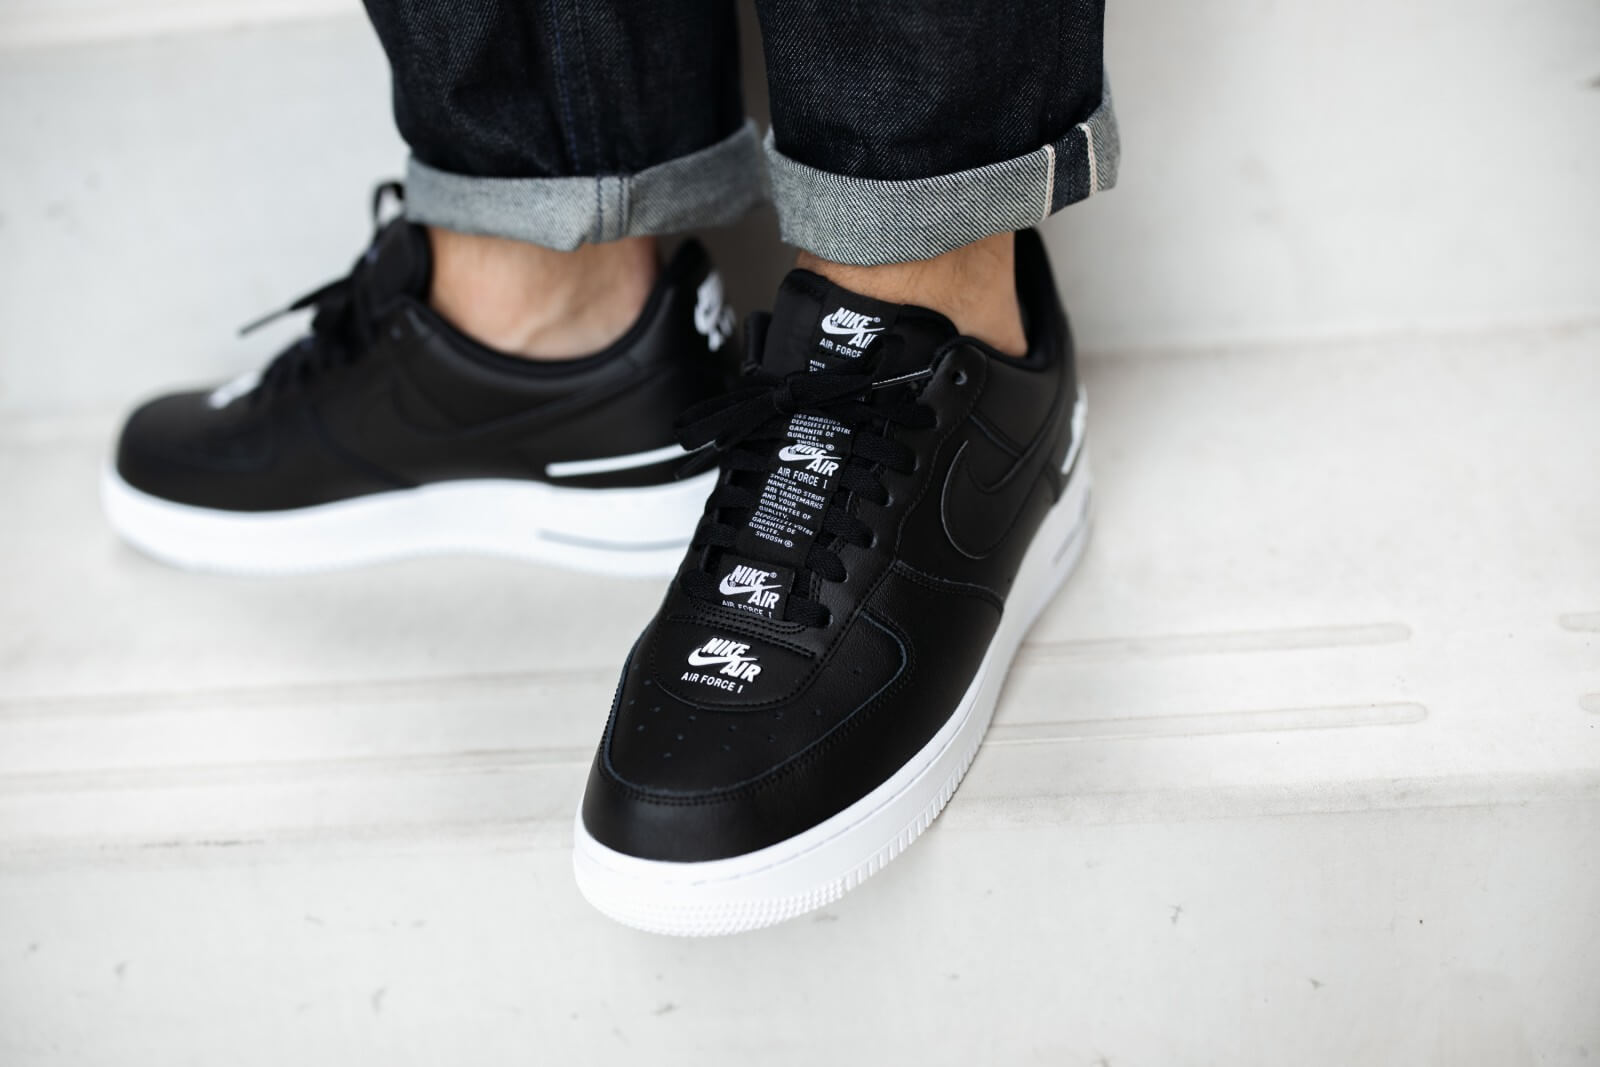 Nike Air Force 1 07 LV8 3 Black/White